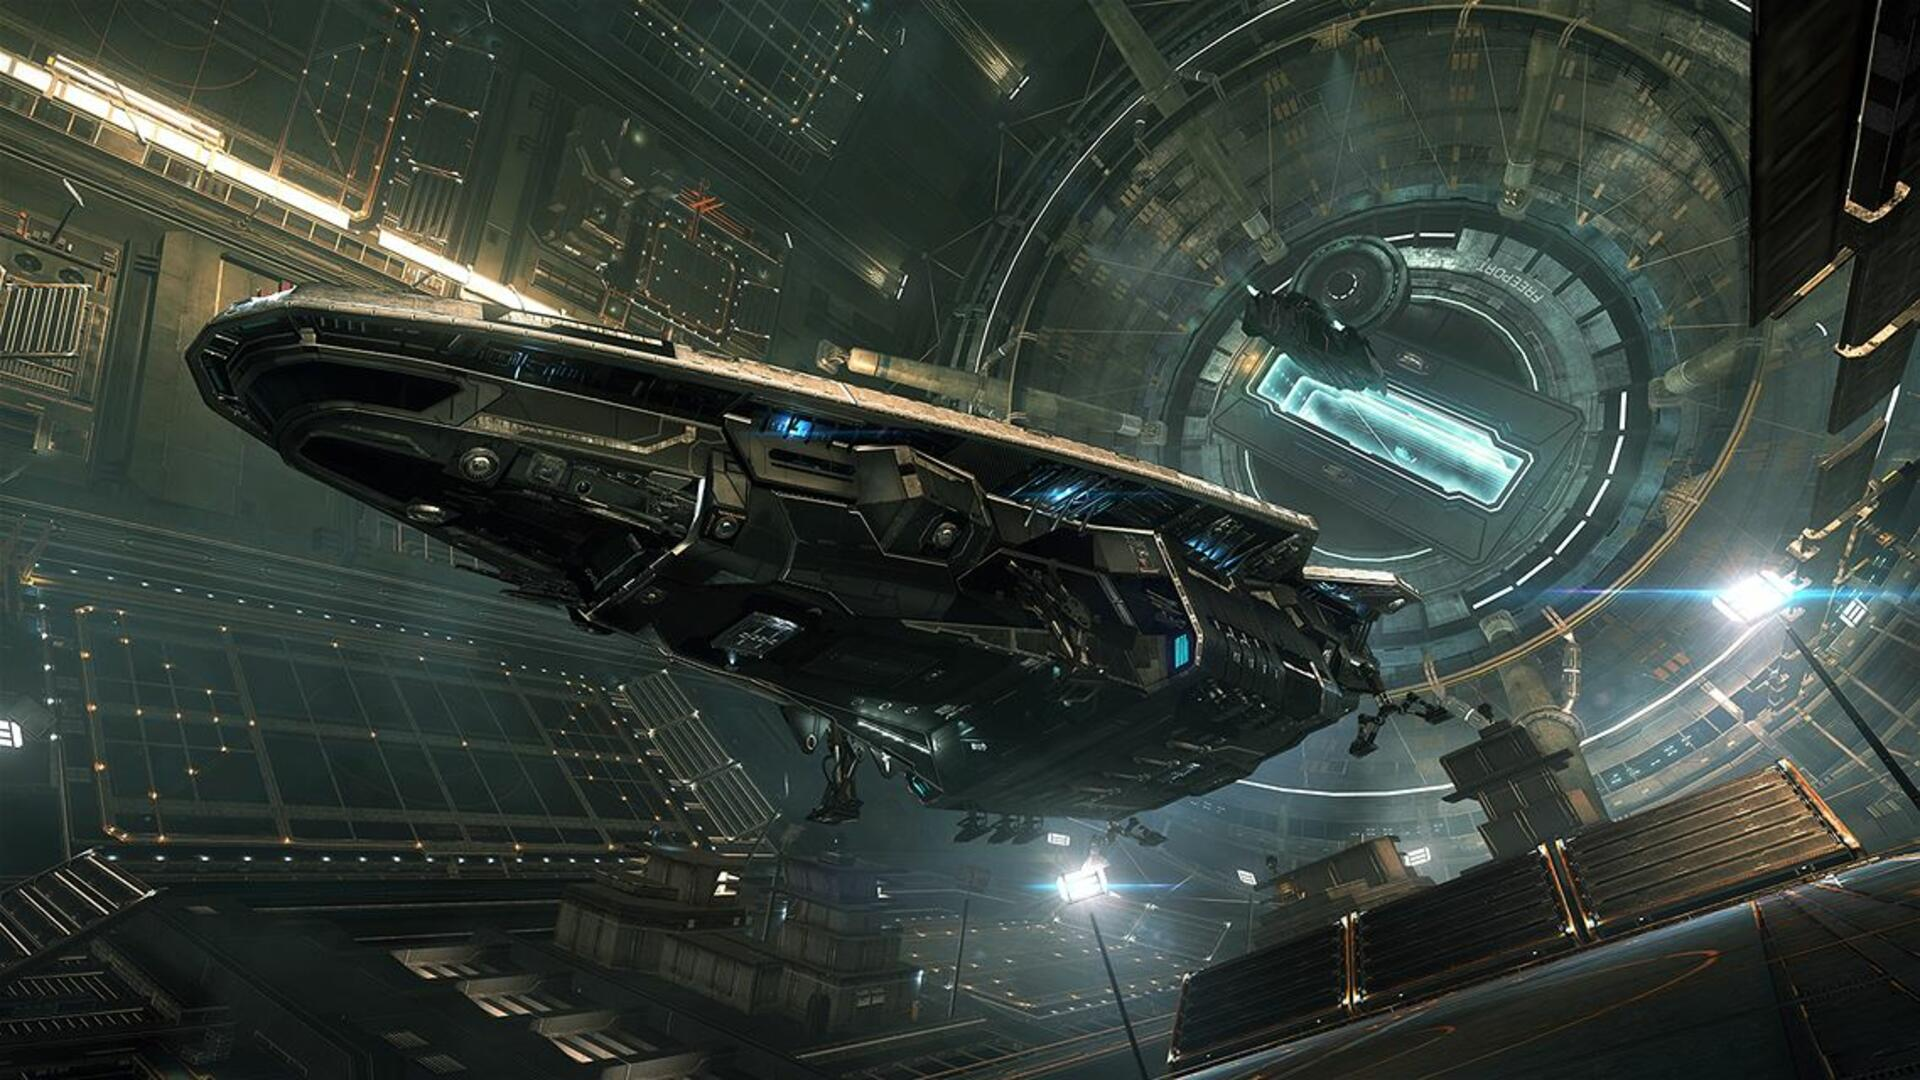 Elite Dangerous Players Rush to Save an In-Game Charity Expedition as Devs Offer an Apology